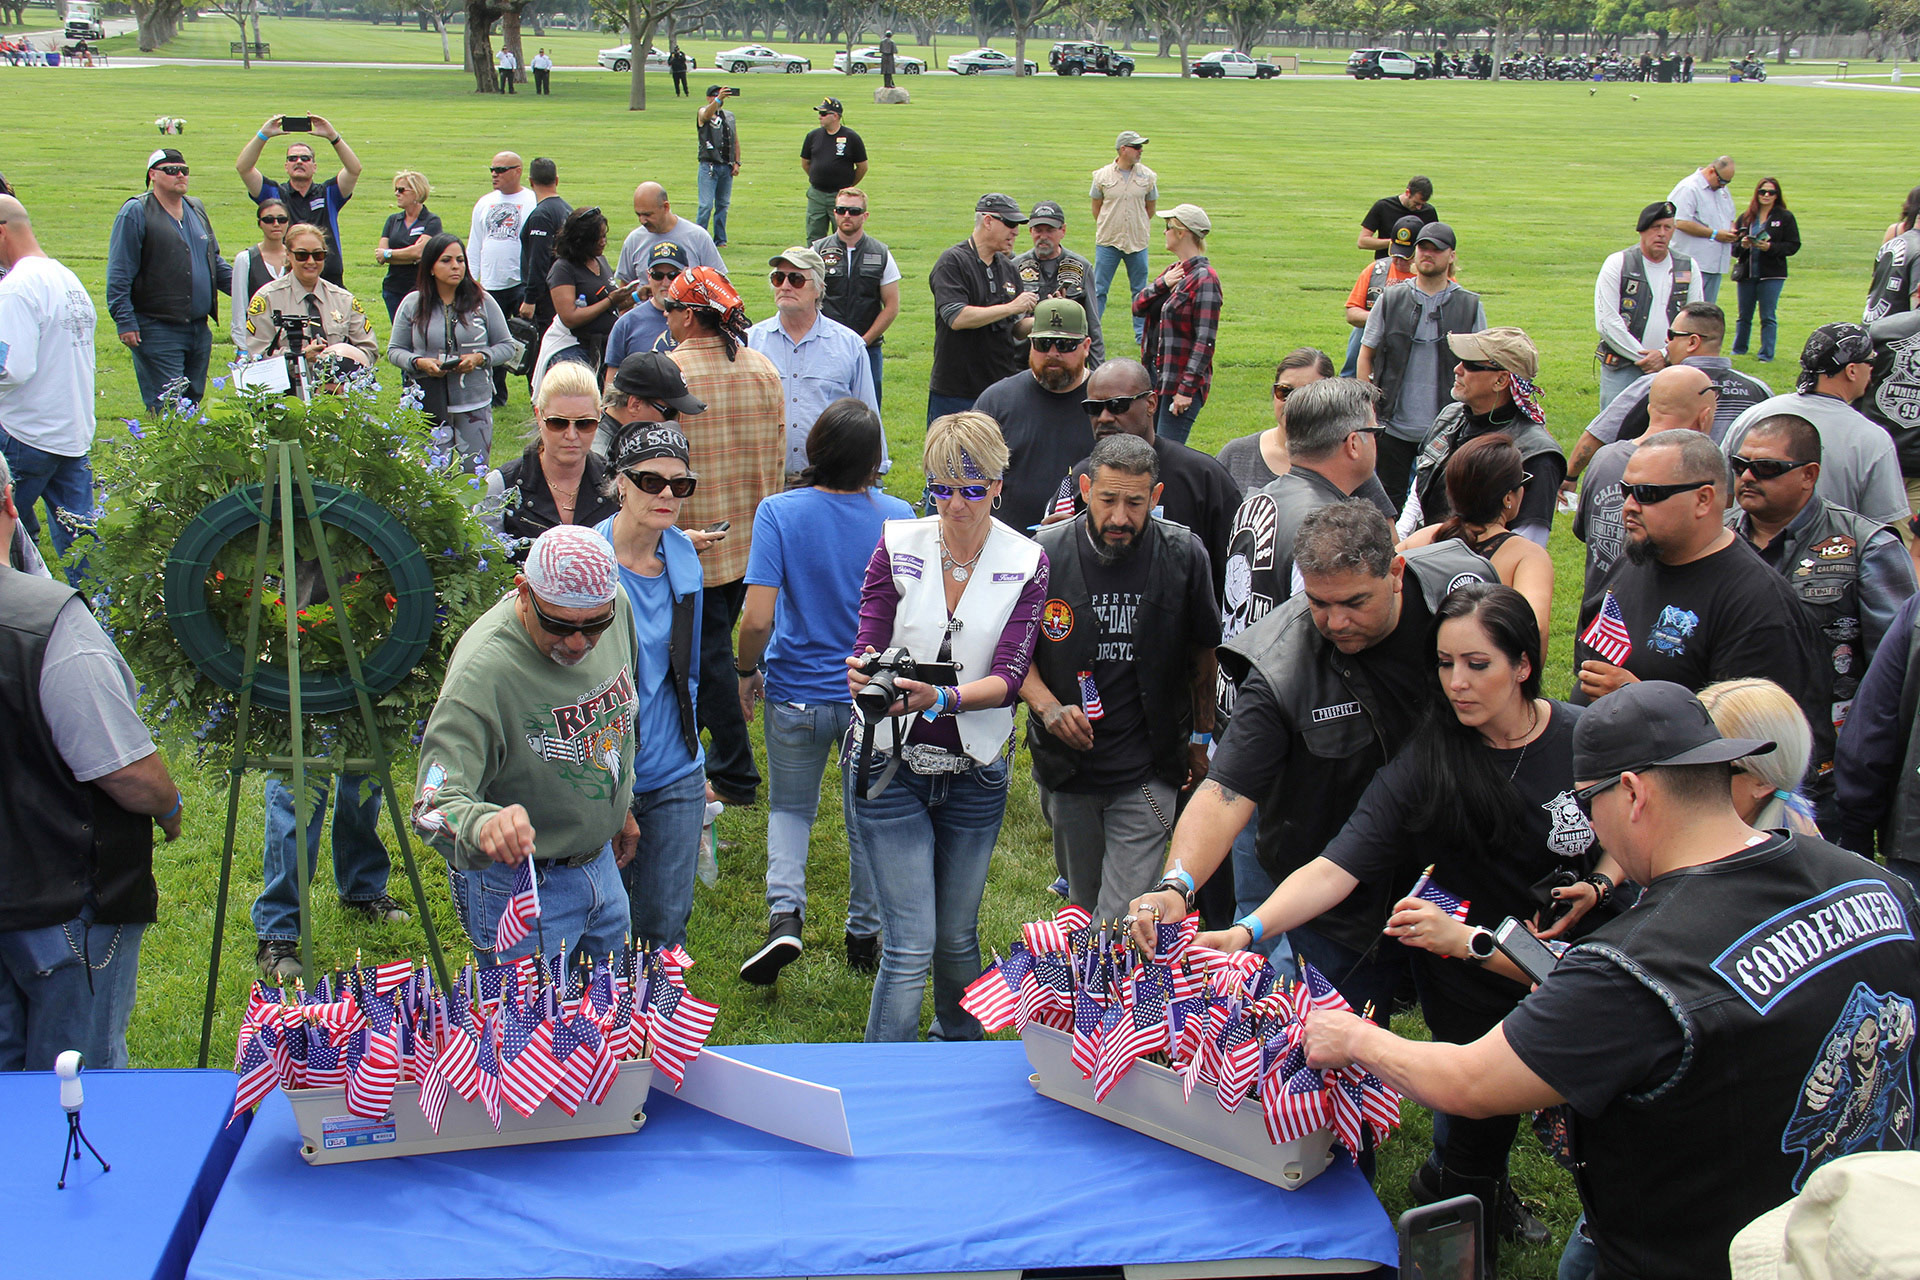 scenes-from-the-6th-annual-heroes-ride-20